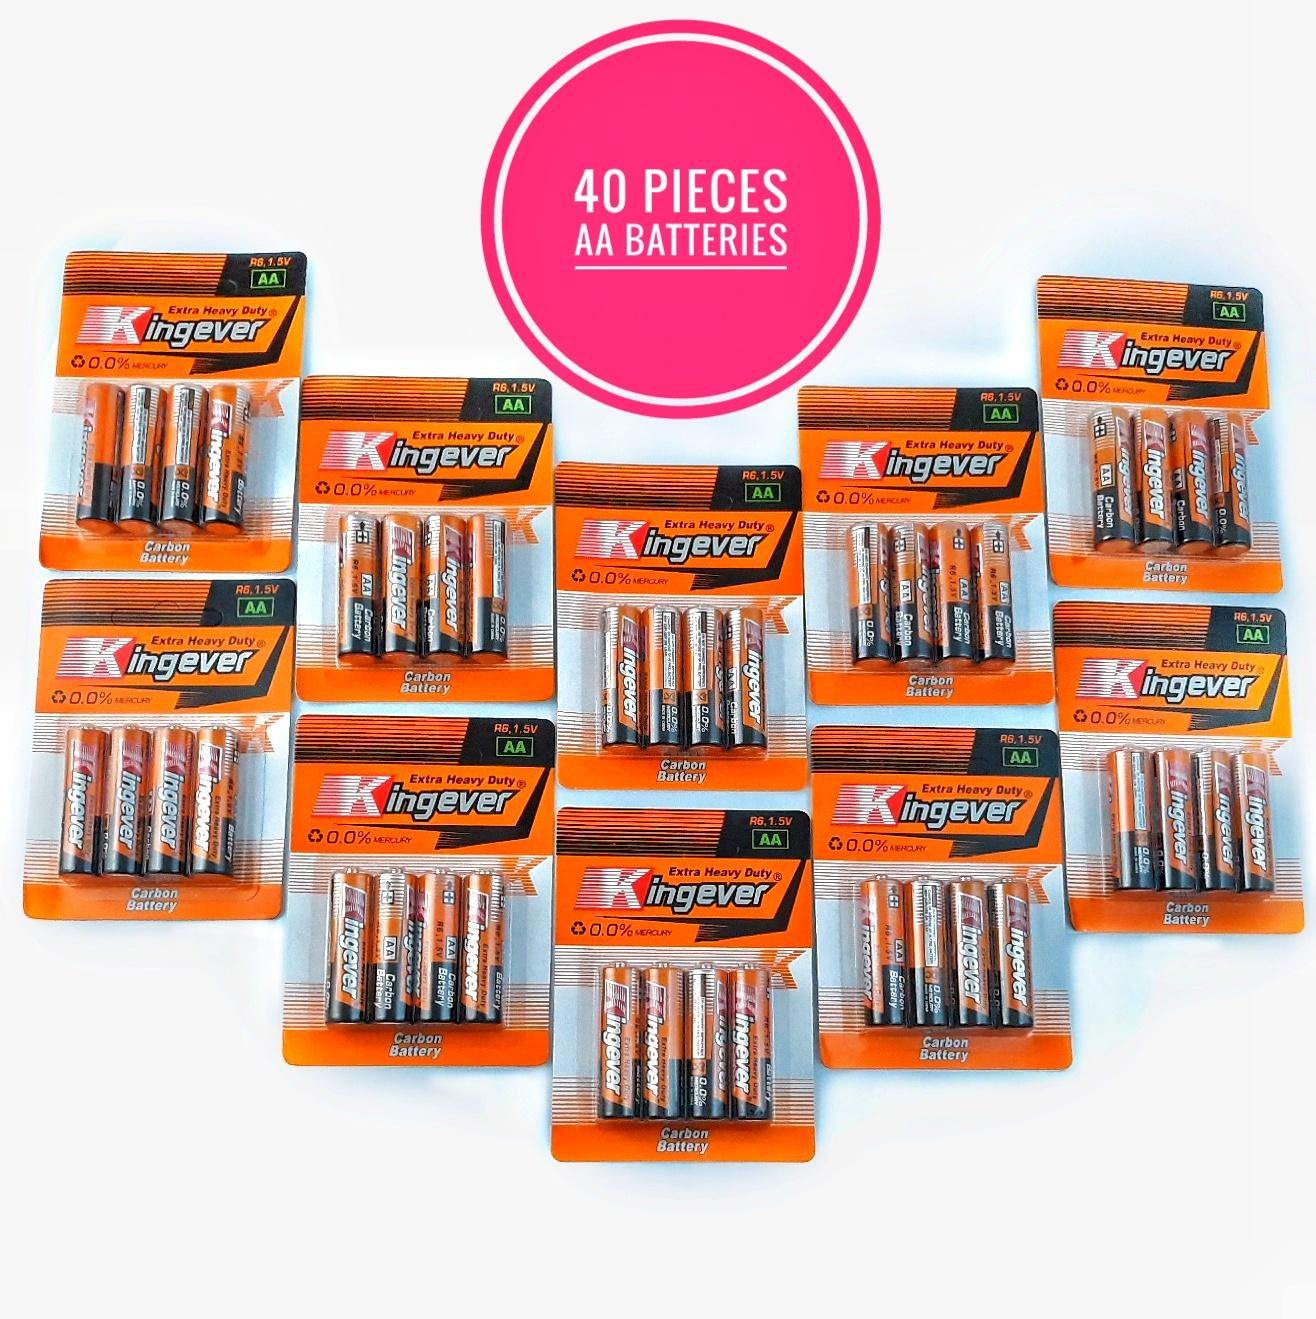 MMT Kingever AA Battery 40pcs - 1.5V Double A Batteries